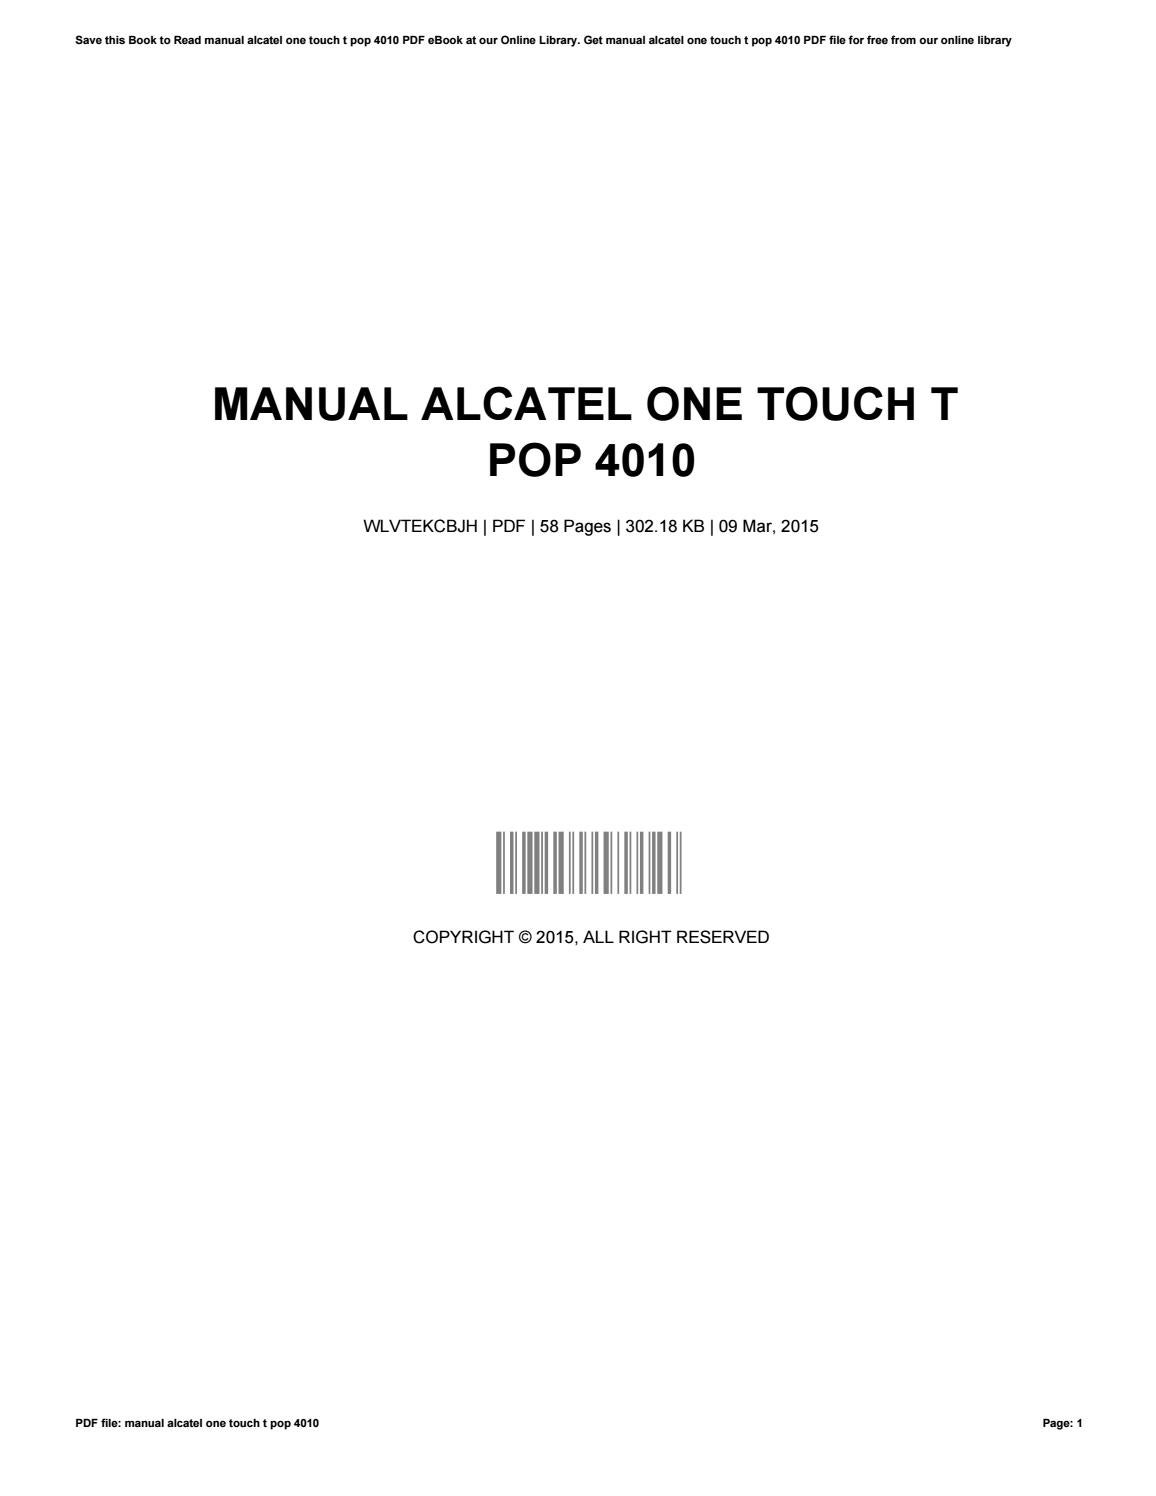 Array - manual alcatel one touch t pop 4010 by michelle issuu rh issuu ...